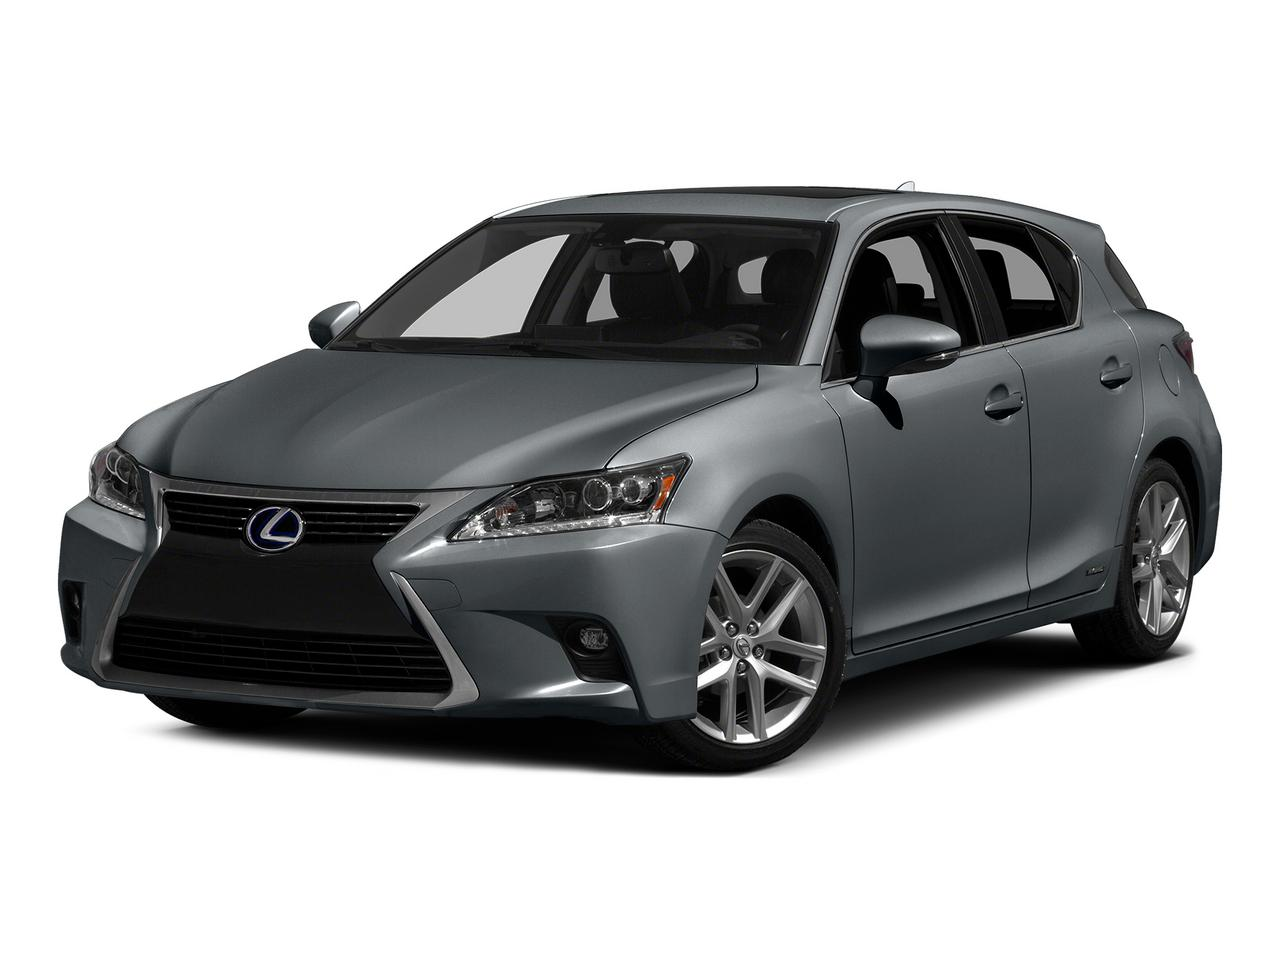 2015 Lexus CT 200h Vehicle Photo in Prince Frederick, MD 20678